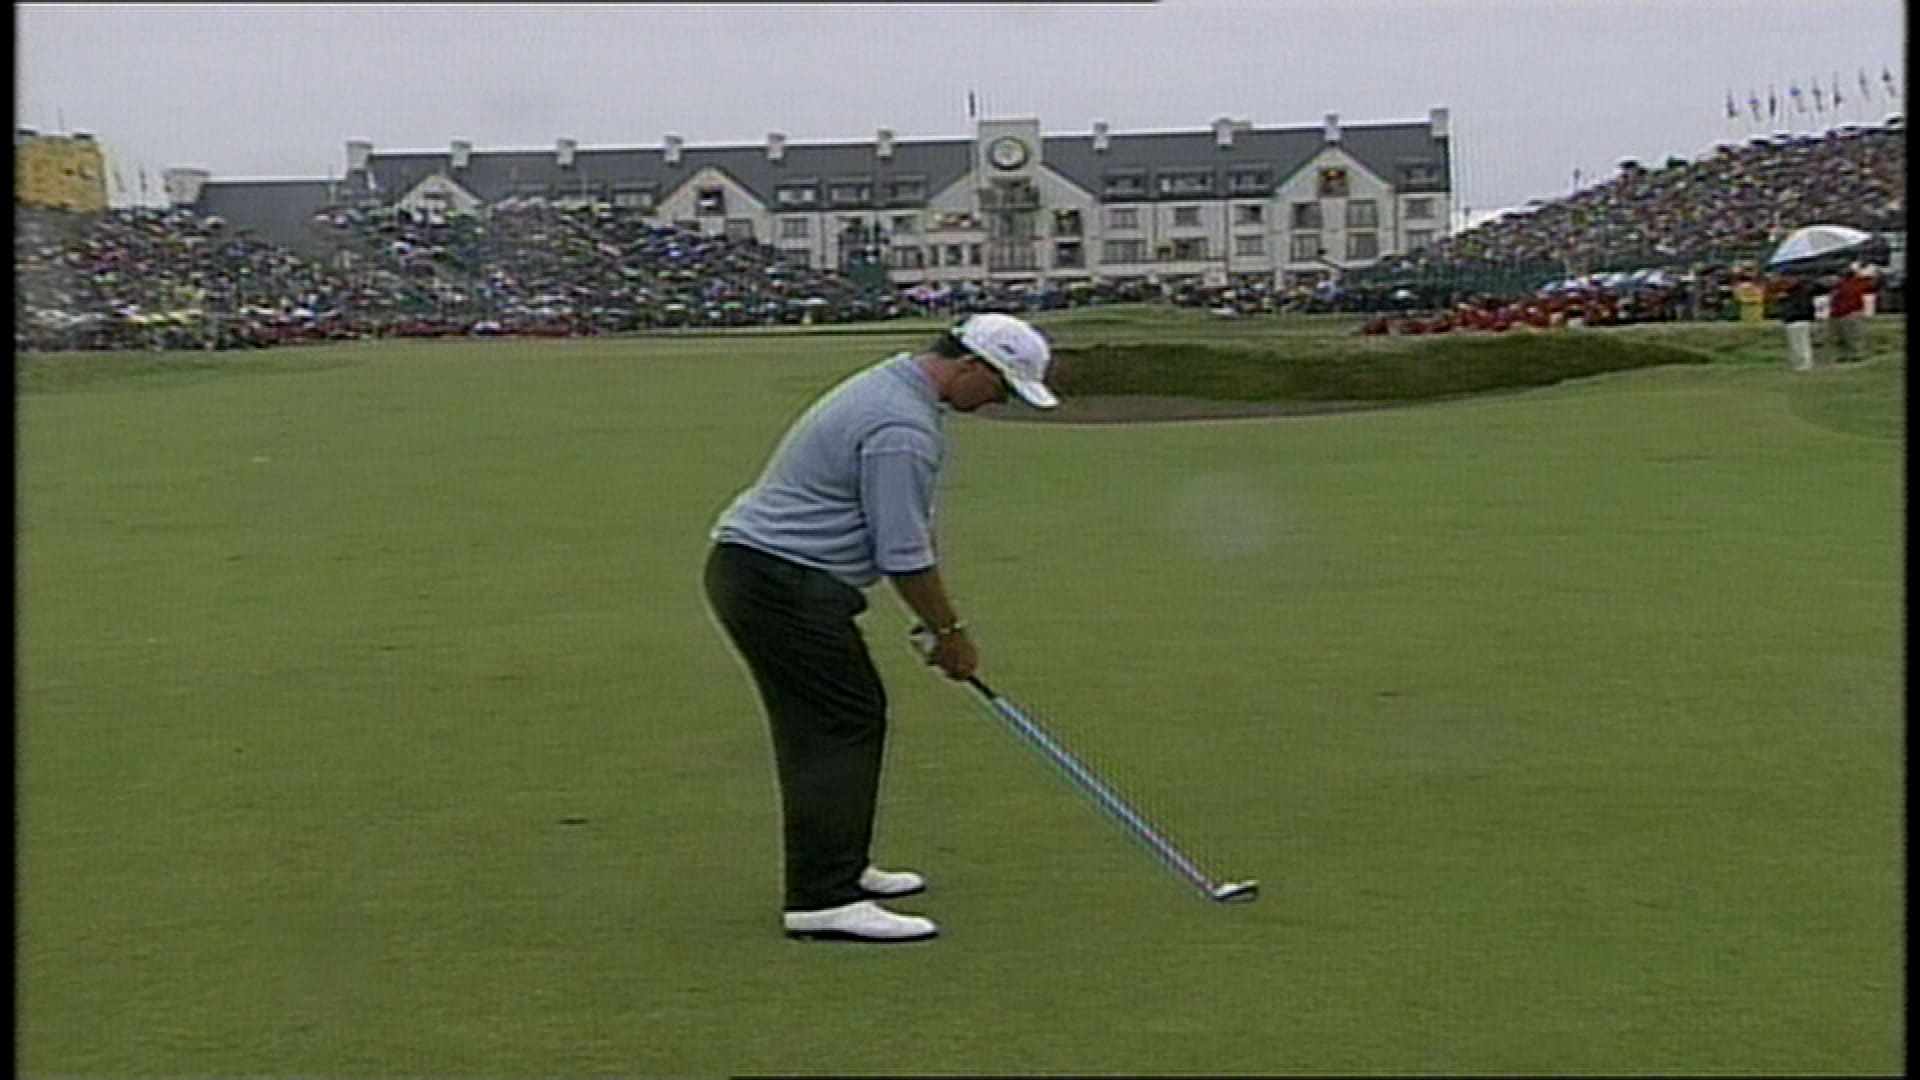 1999 british open paul lawrie playoff shot on 18th hole